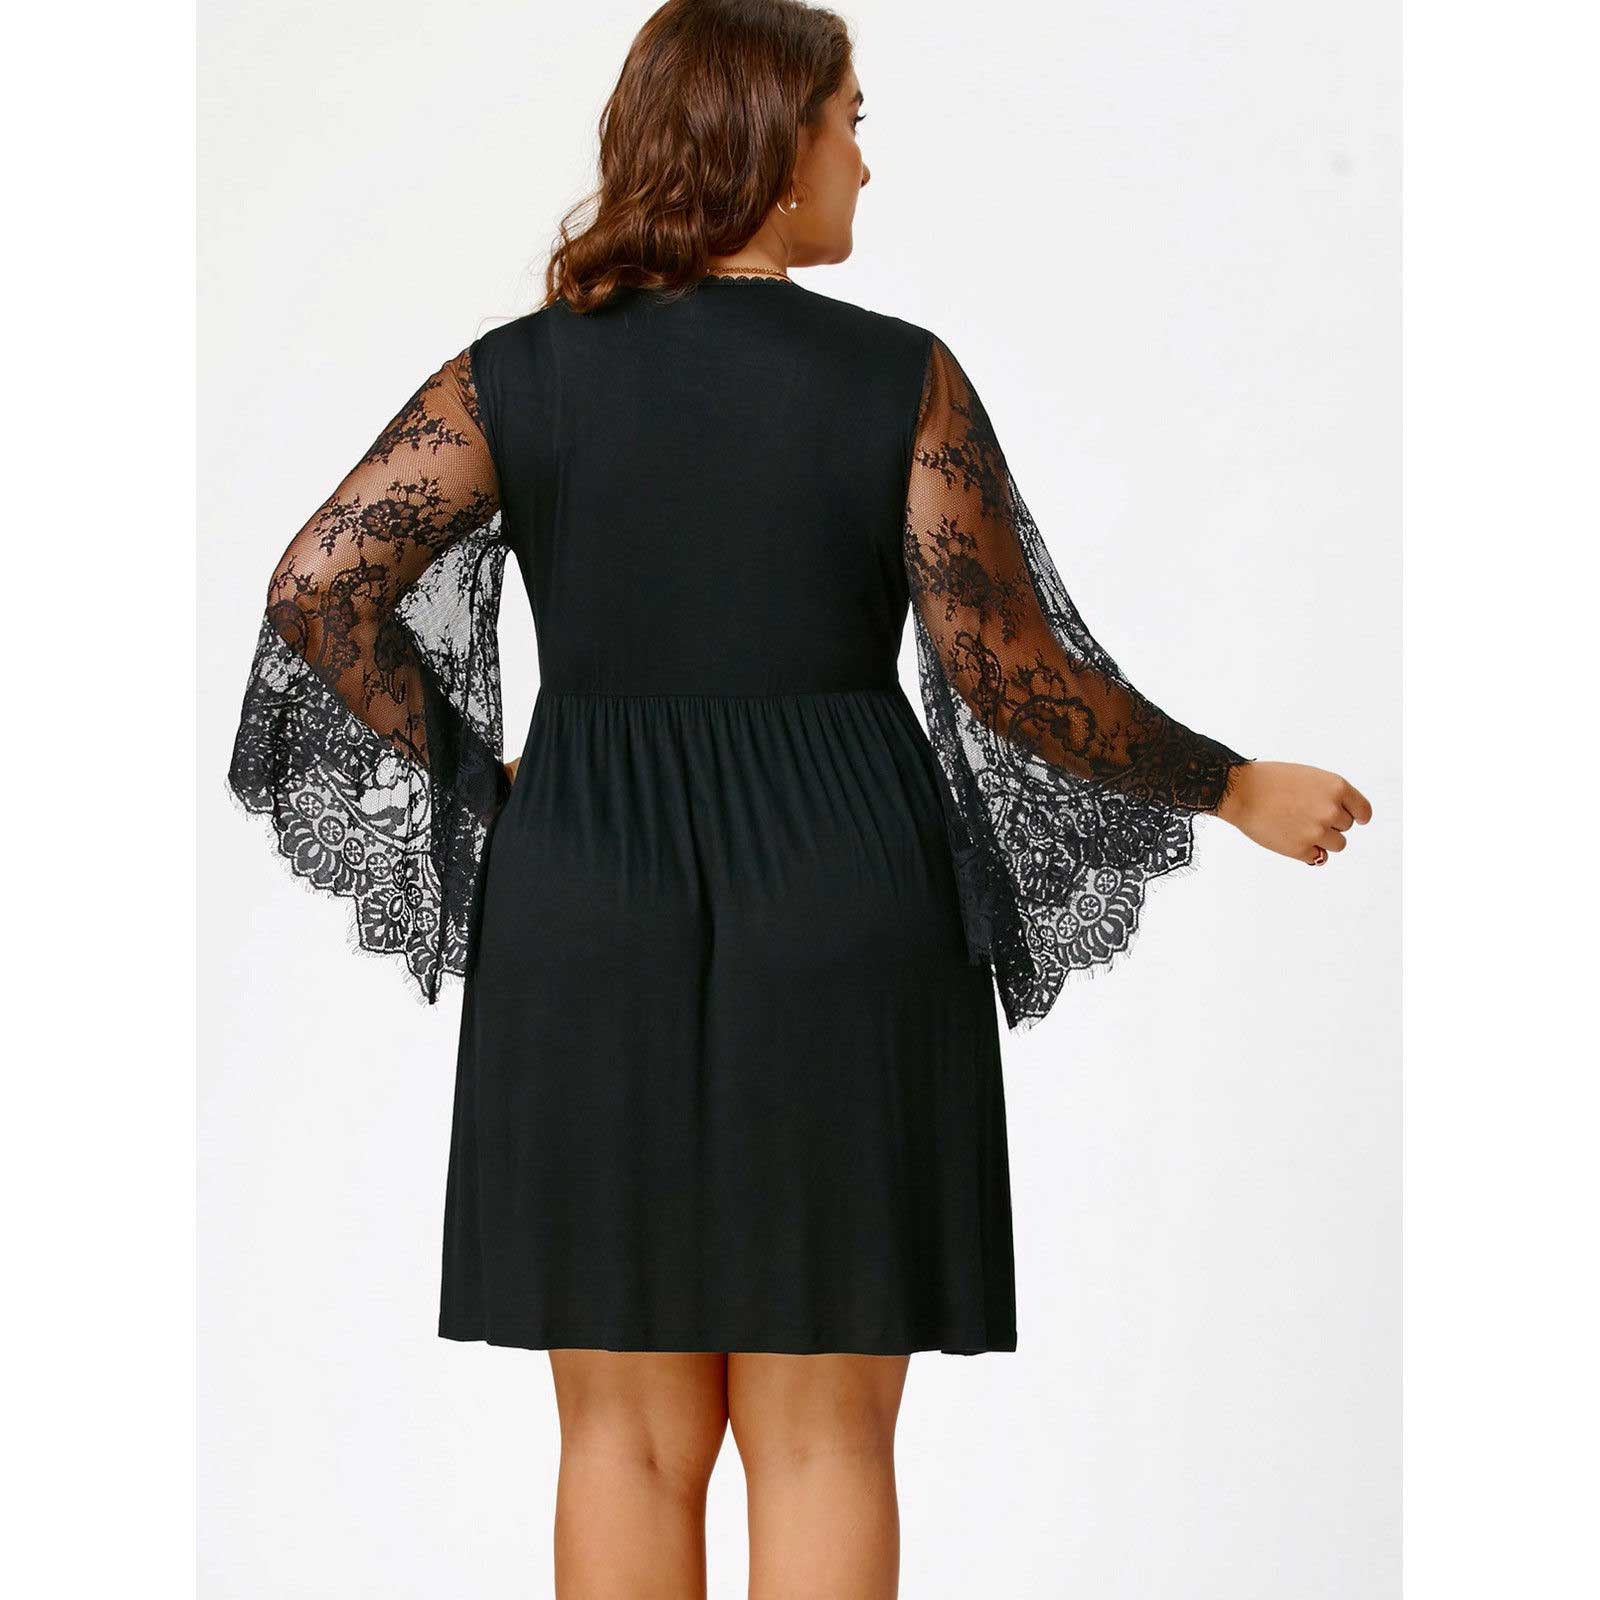 Sexy black dresses for women cocktail